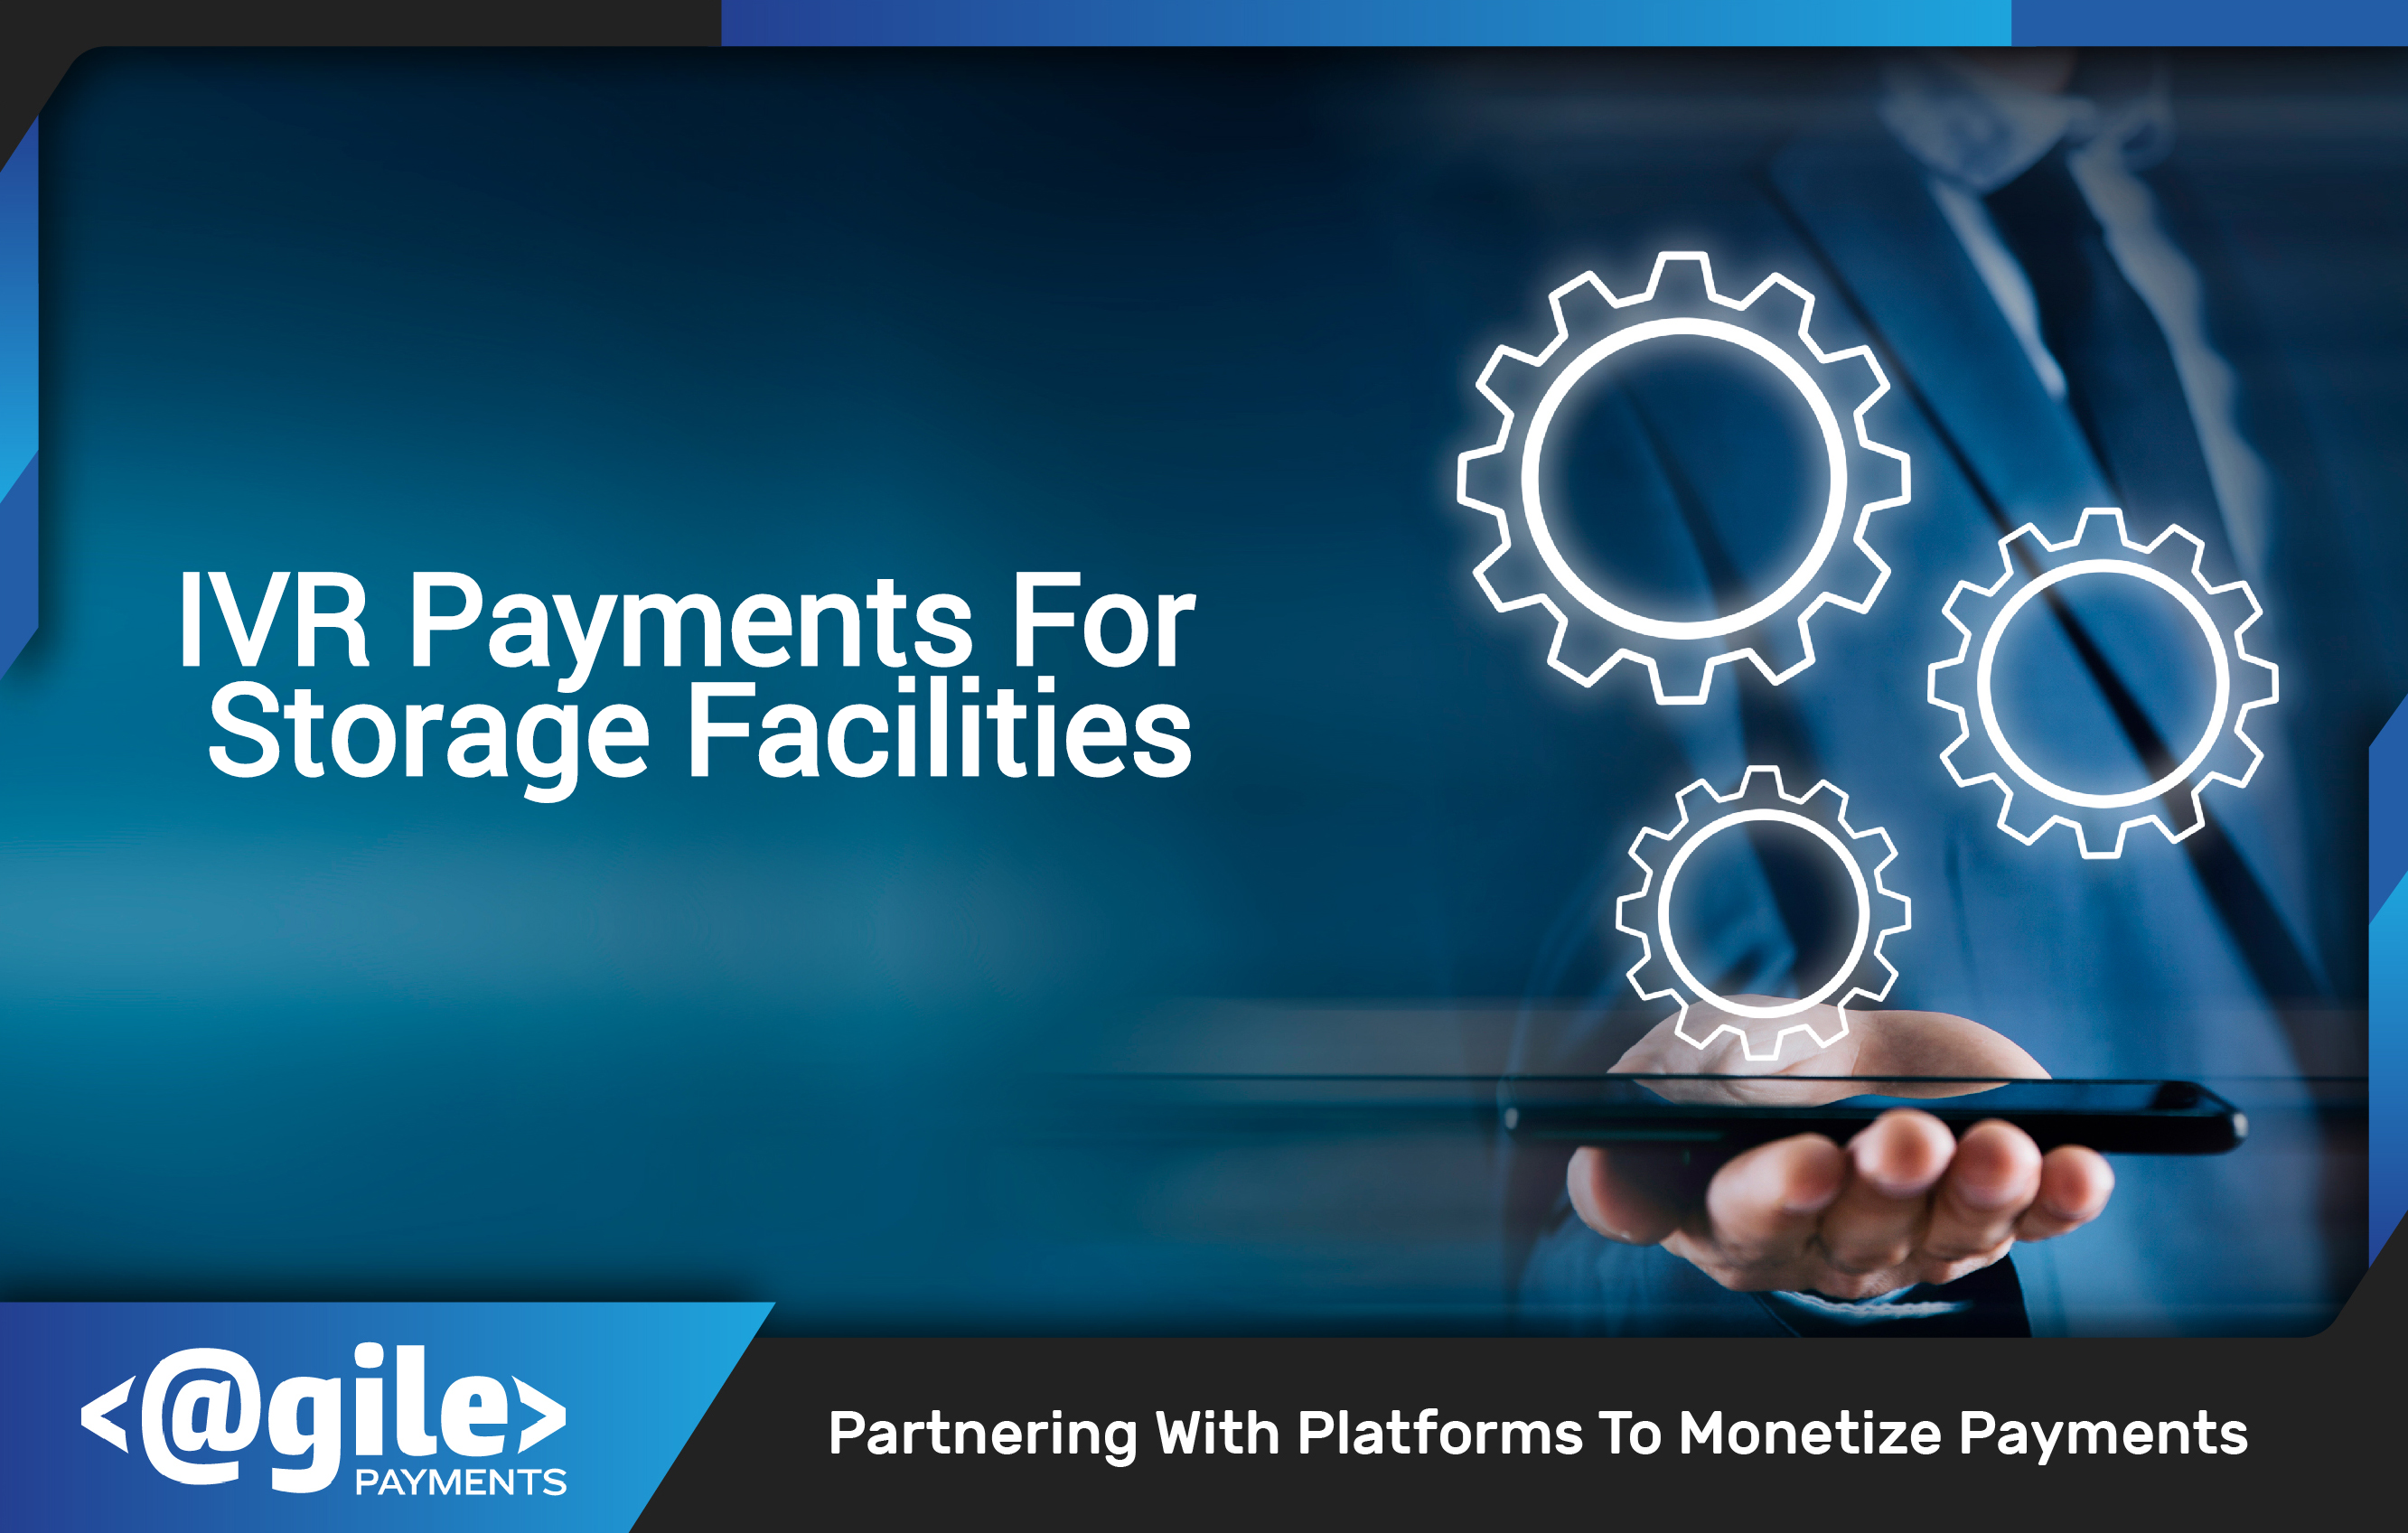 IVR Payments For Storage Facilities